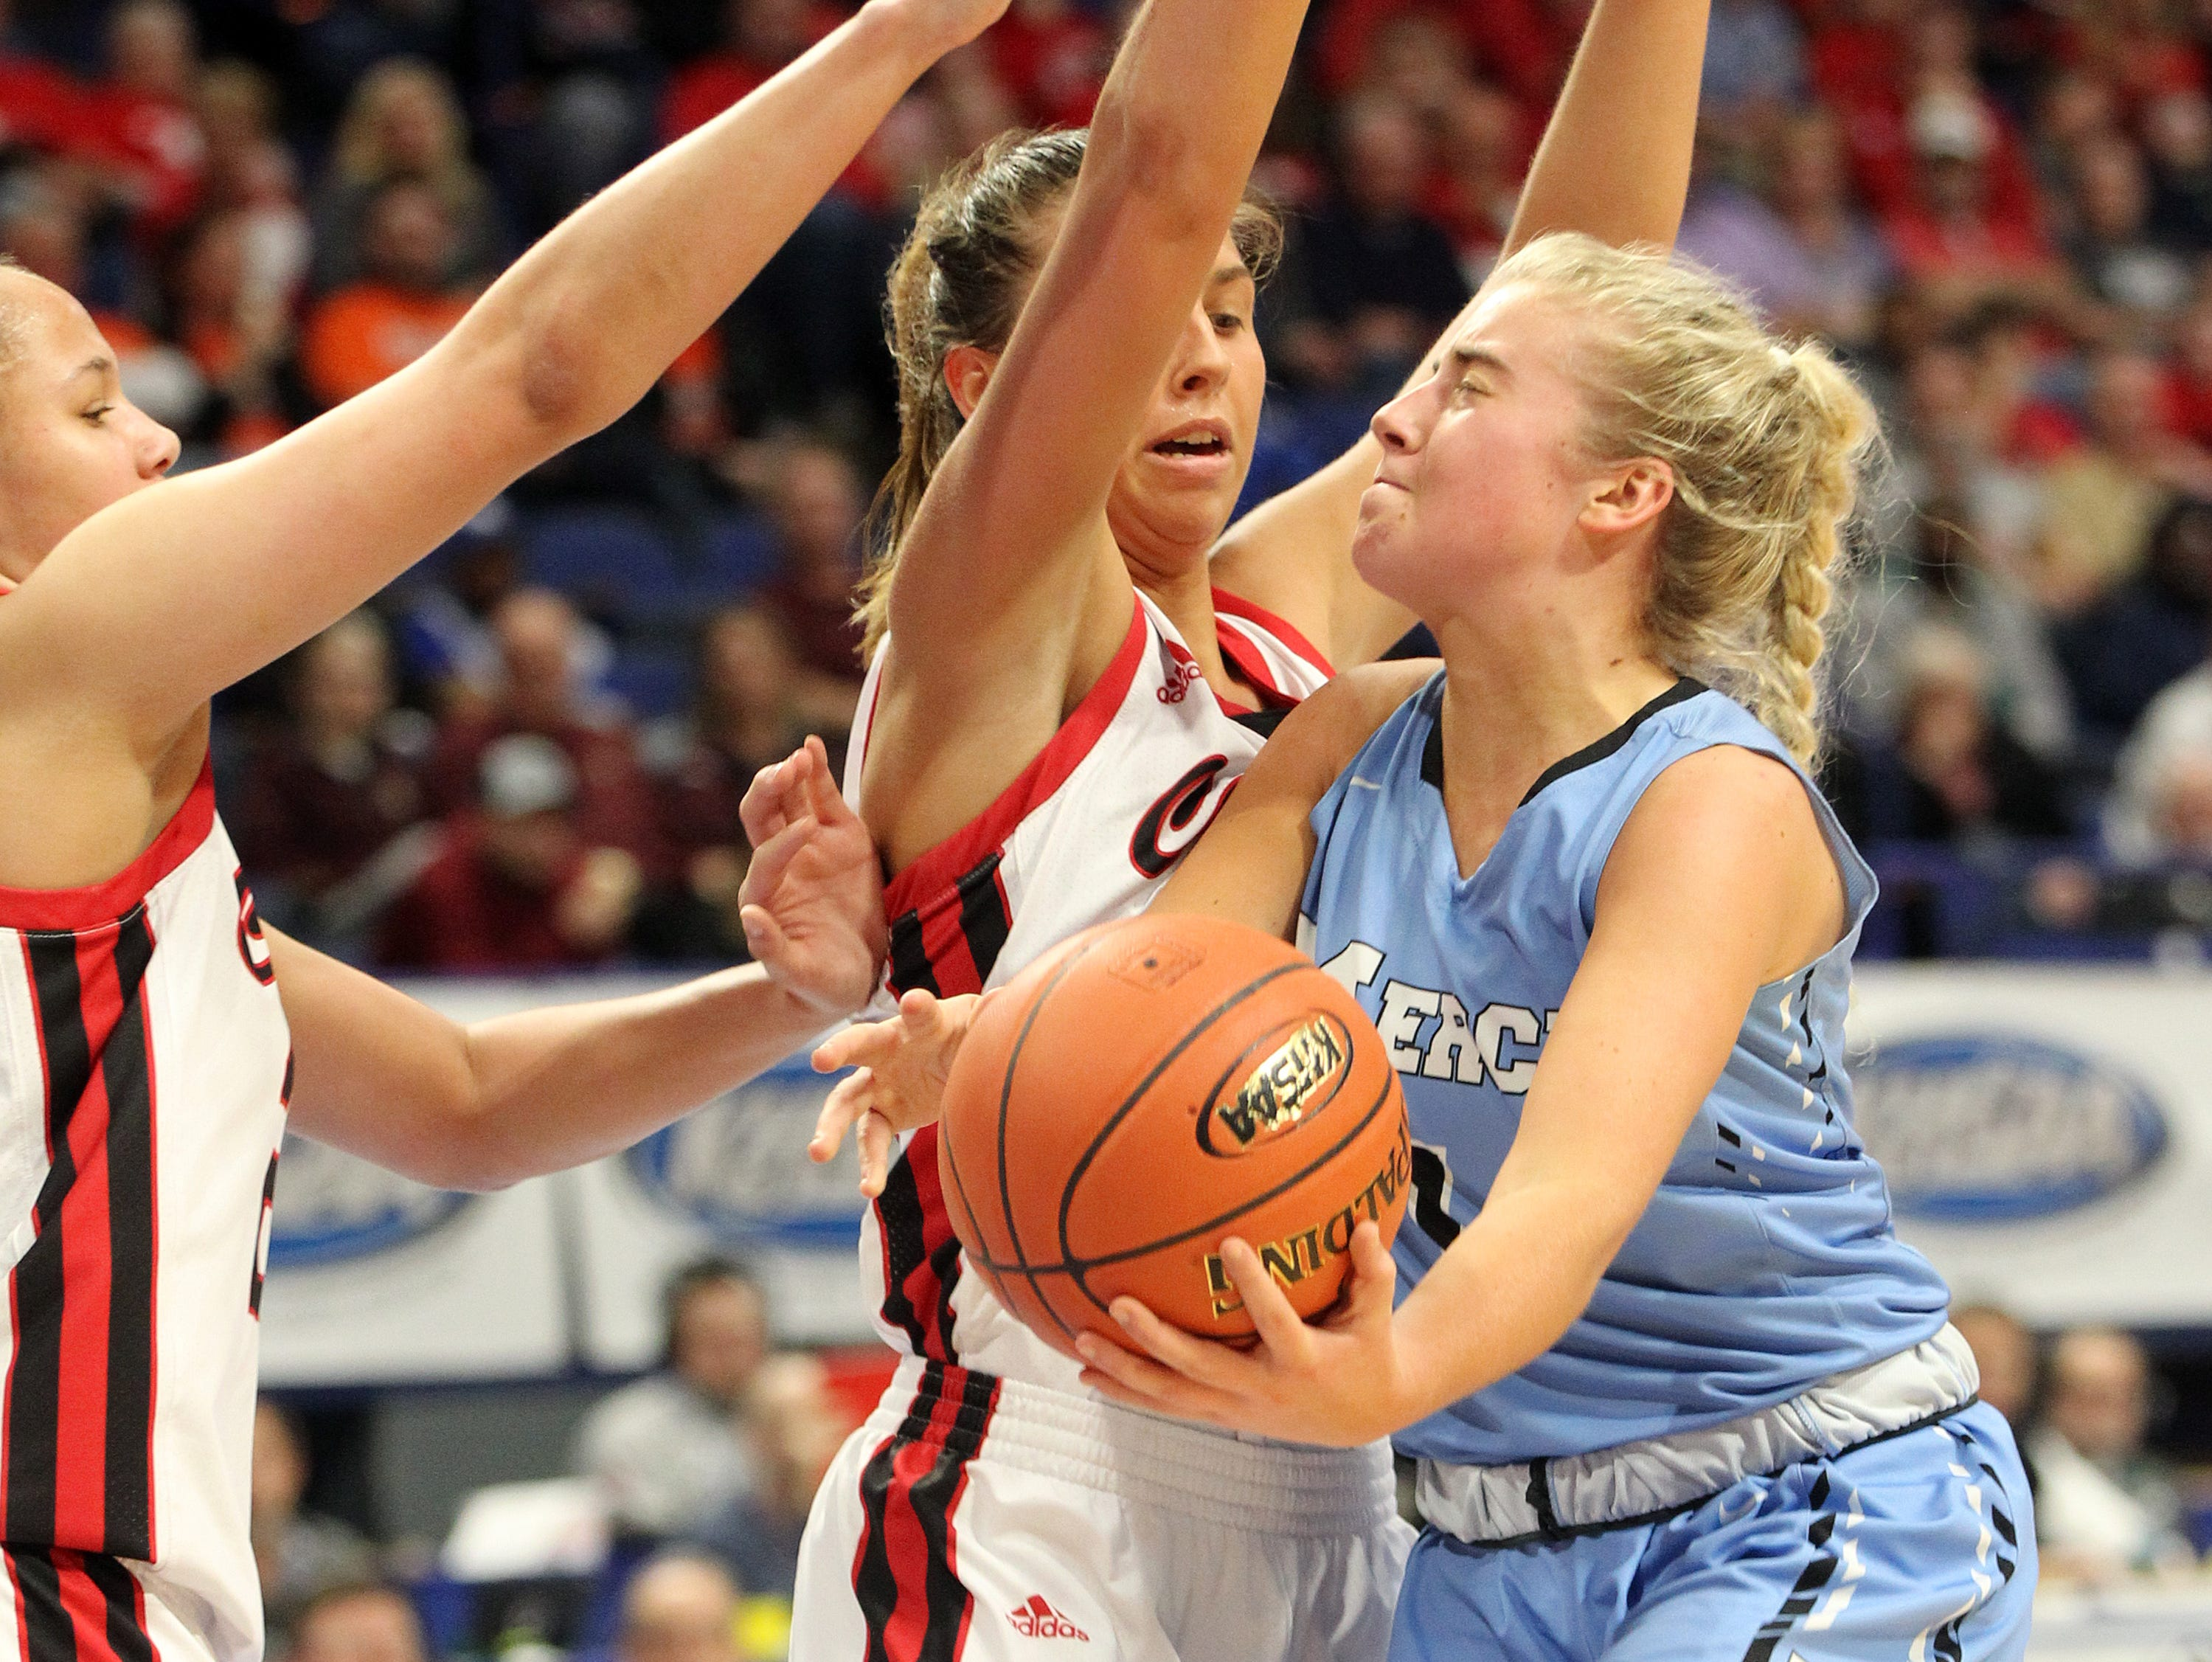 Mercy's Hope Sivori, right, looks for an opening on the George Rogers Clark defense in their opening round game at the KHSAA Girl's Sweet 16, Wednesday, March 13. George Rogers Clark won 65-64.